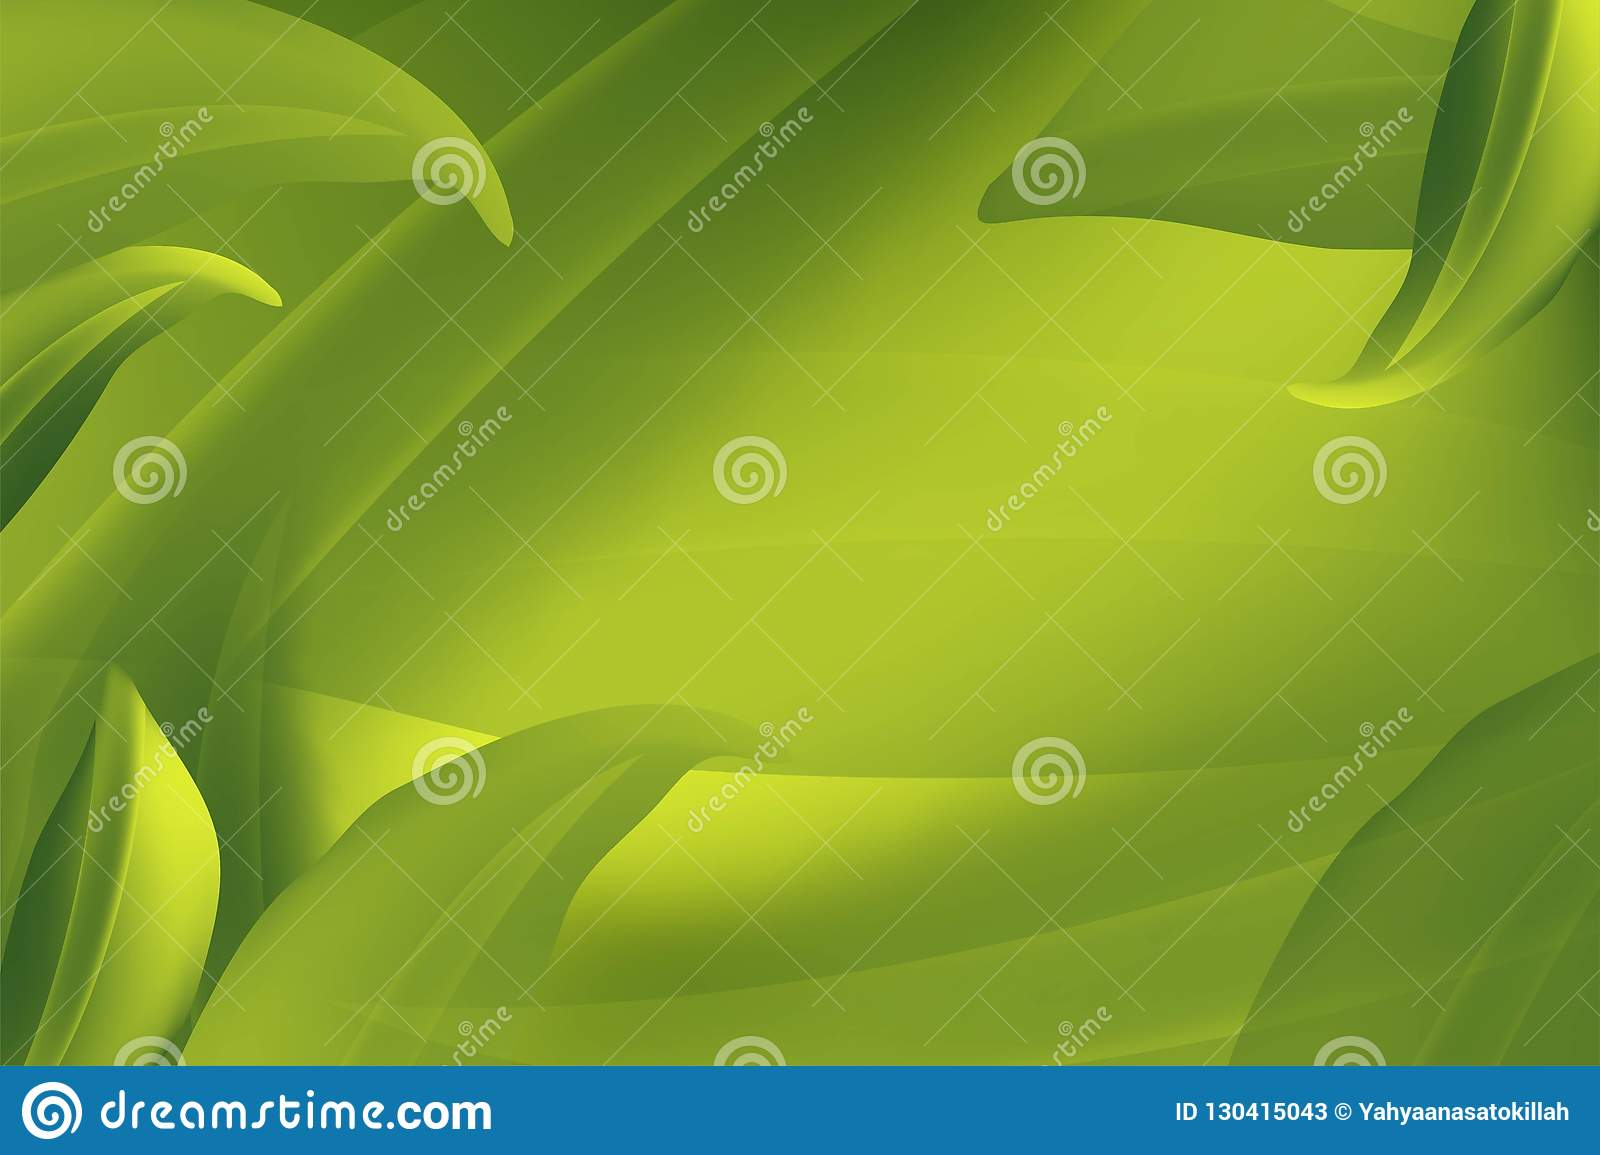 Realistic Fly Green Leaves Pattern Background on a green Organic Element Natural Eco Concept. Vector illustration.